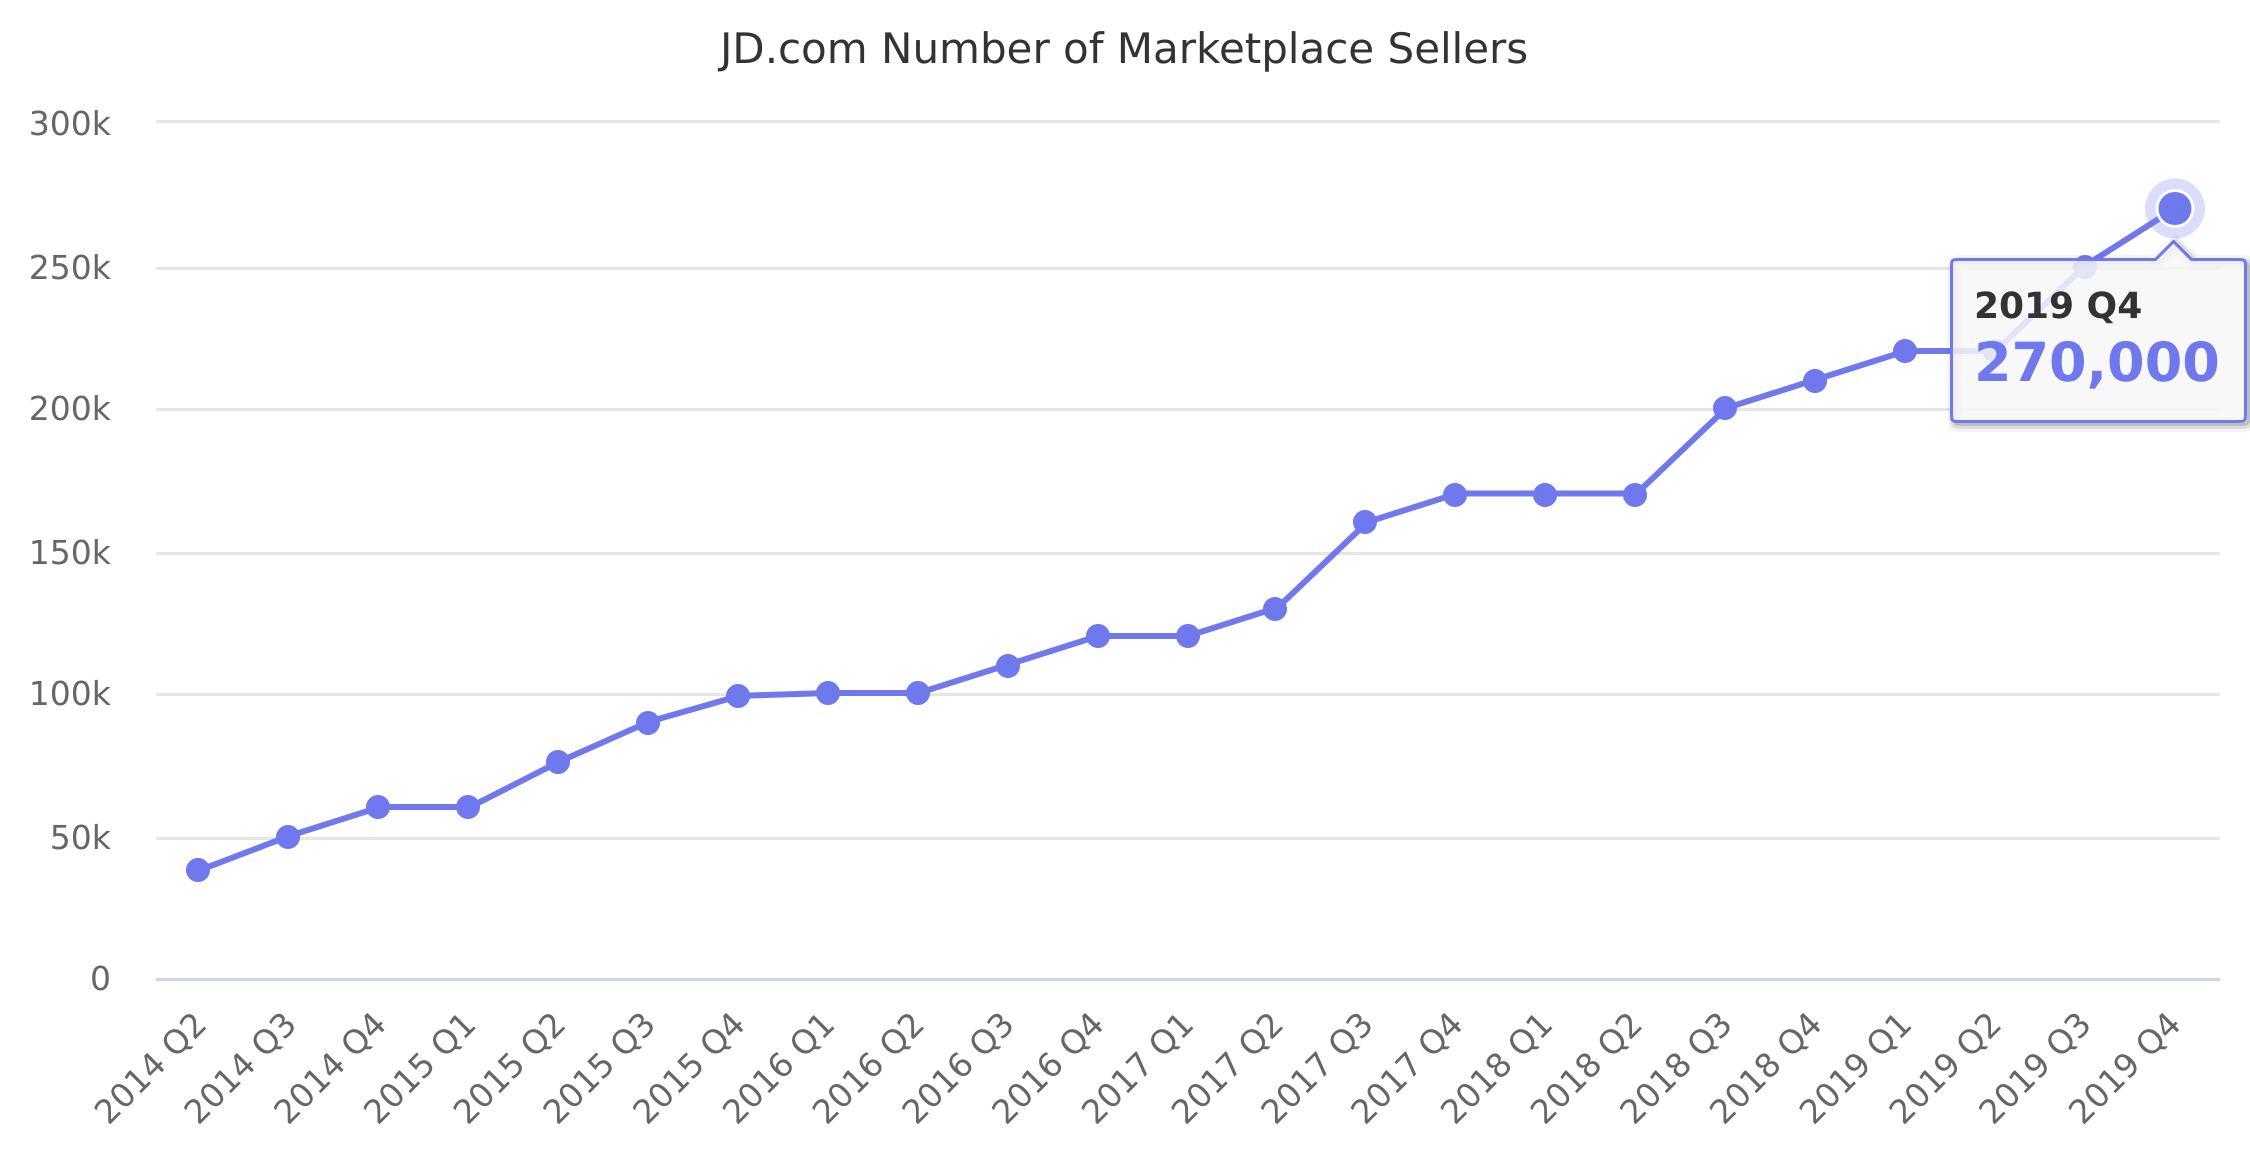 JD.com Number of Marketplace Sellers 2014-2018